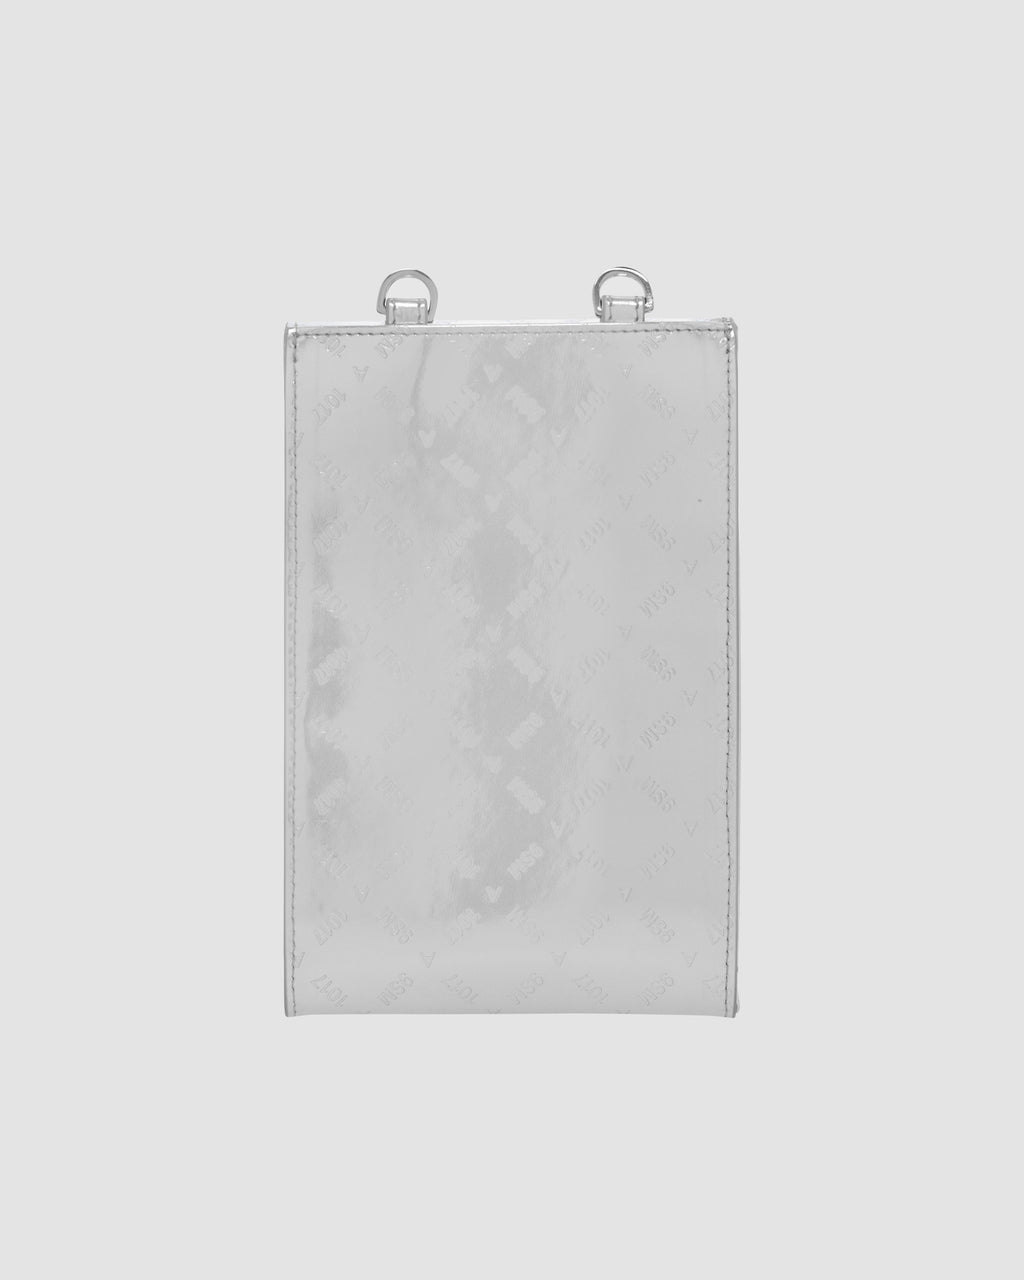 1017 ALYX 9SM | PASSPORT HOLDER | Bag | 270120, 60OFFF19LC, Accessories, bag, Bag Online, Bags, F19, Man, SHOULDER BAGS, Silver, UNISEX, Woman